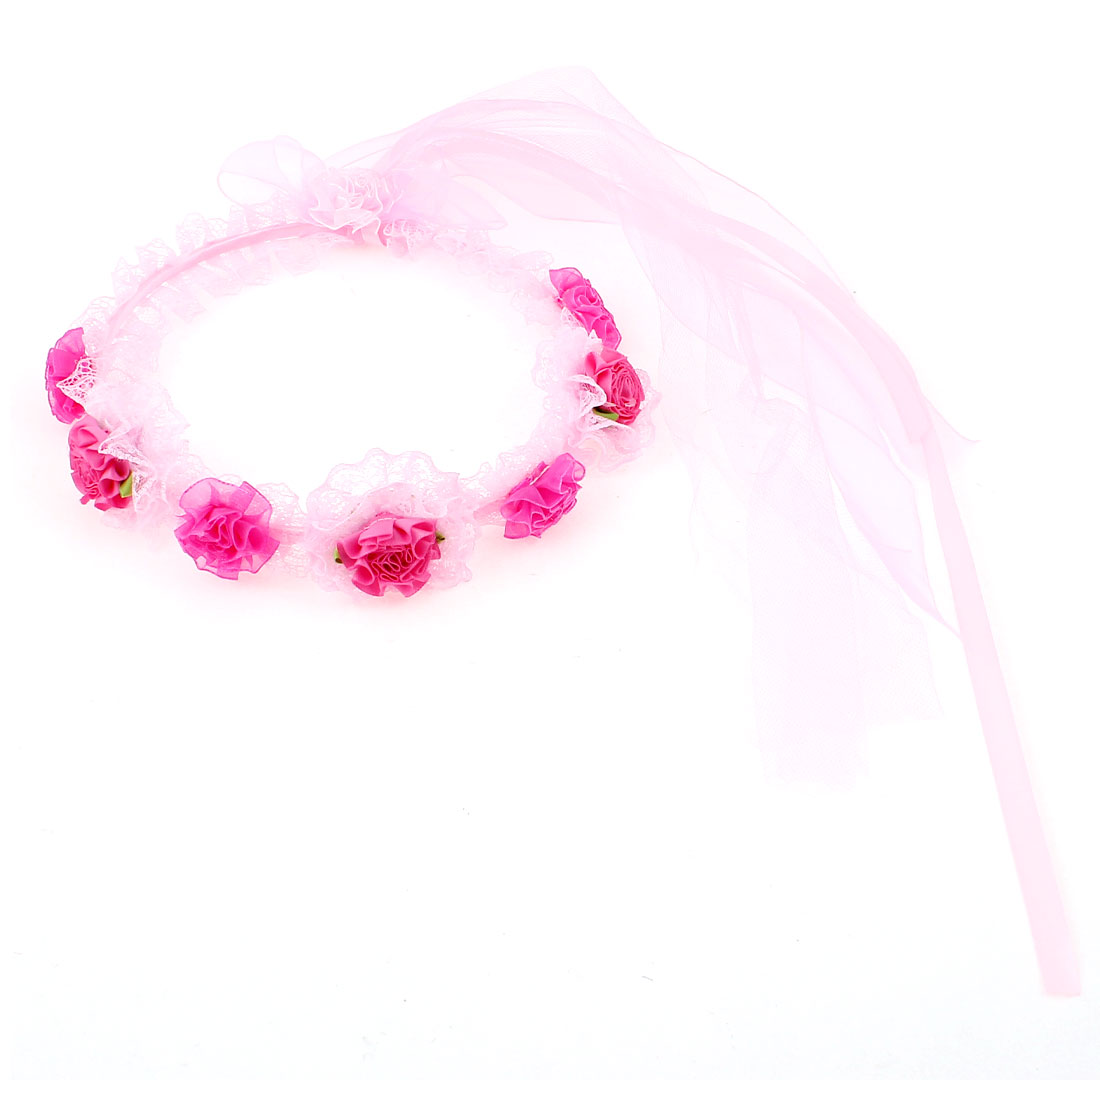 Bridal Wedding Party Flower Ribbon Decor Headdress Hair Garland Wreath Veil Pink